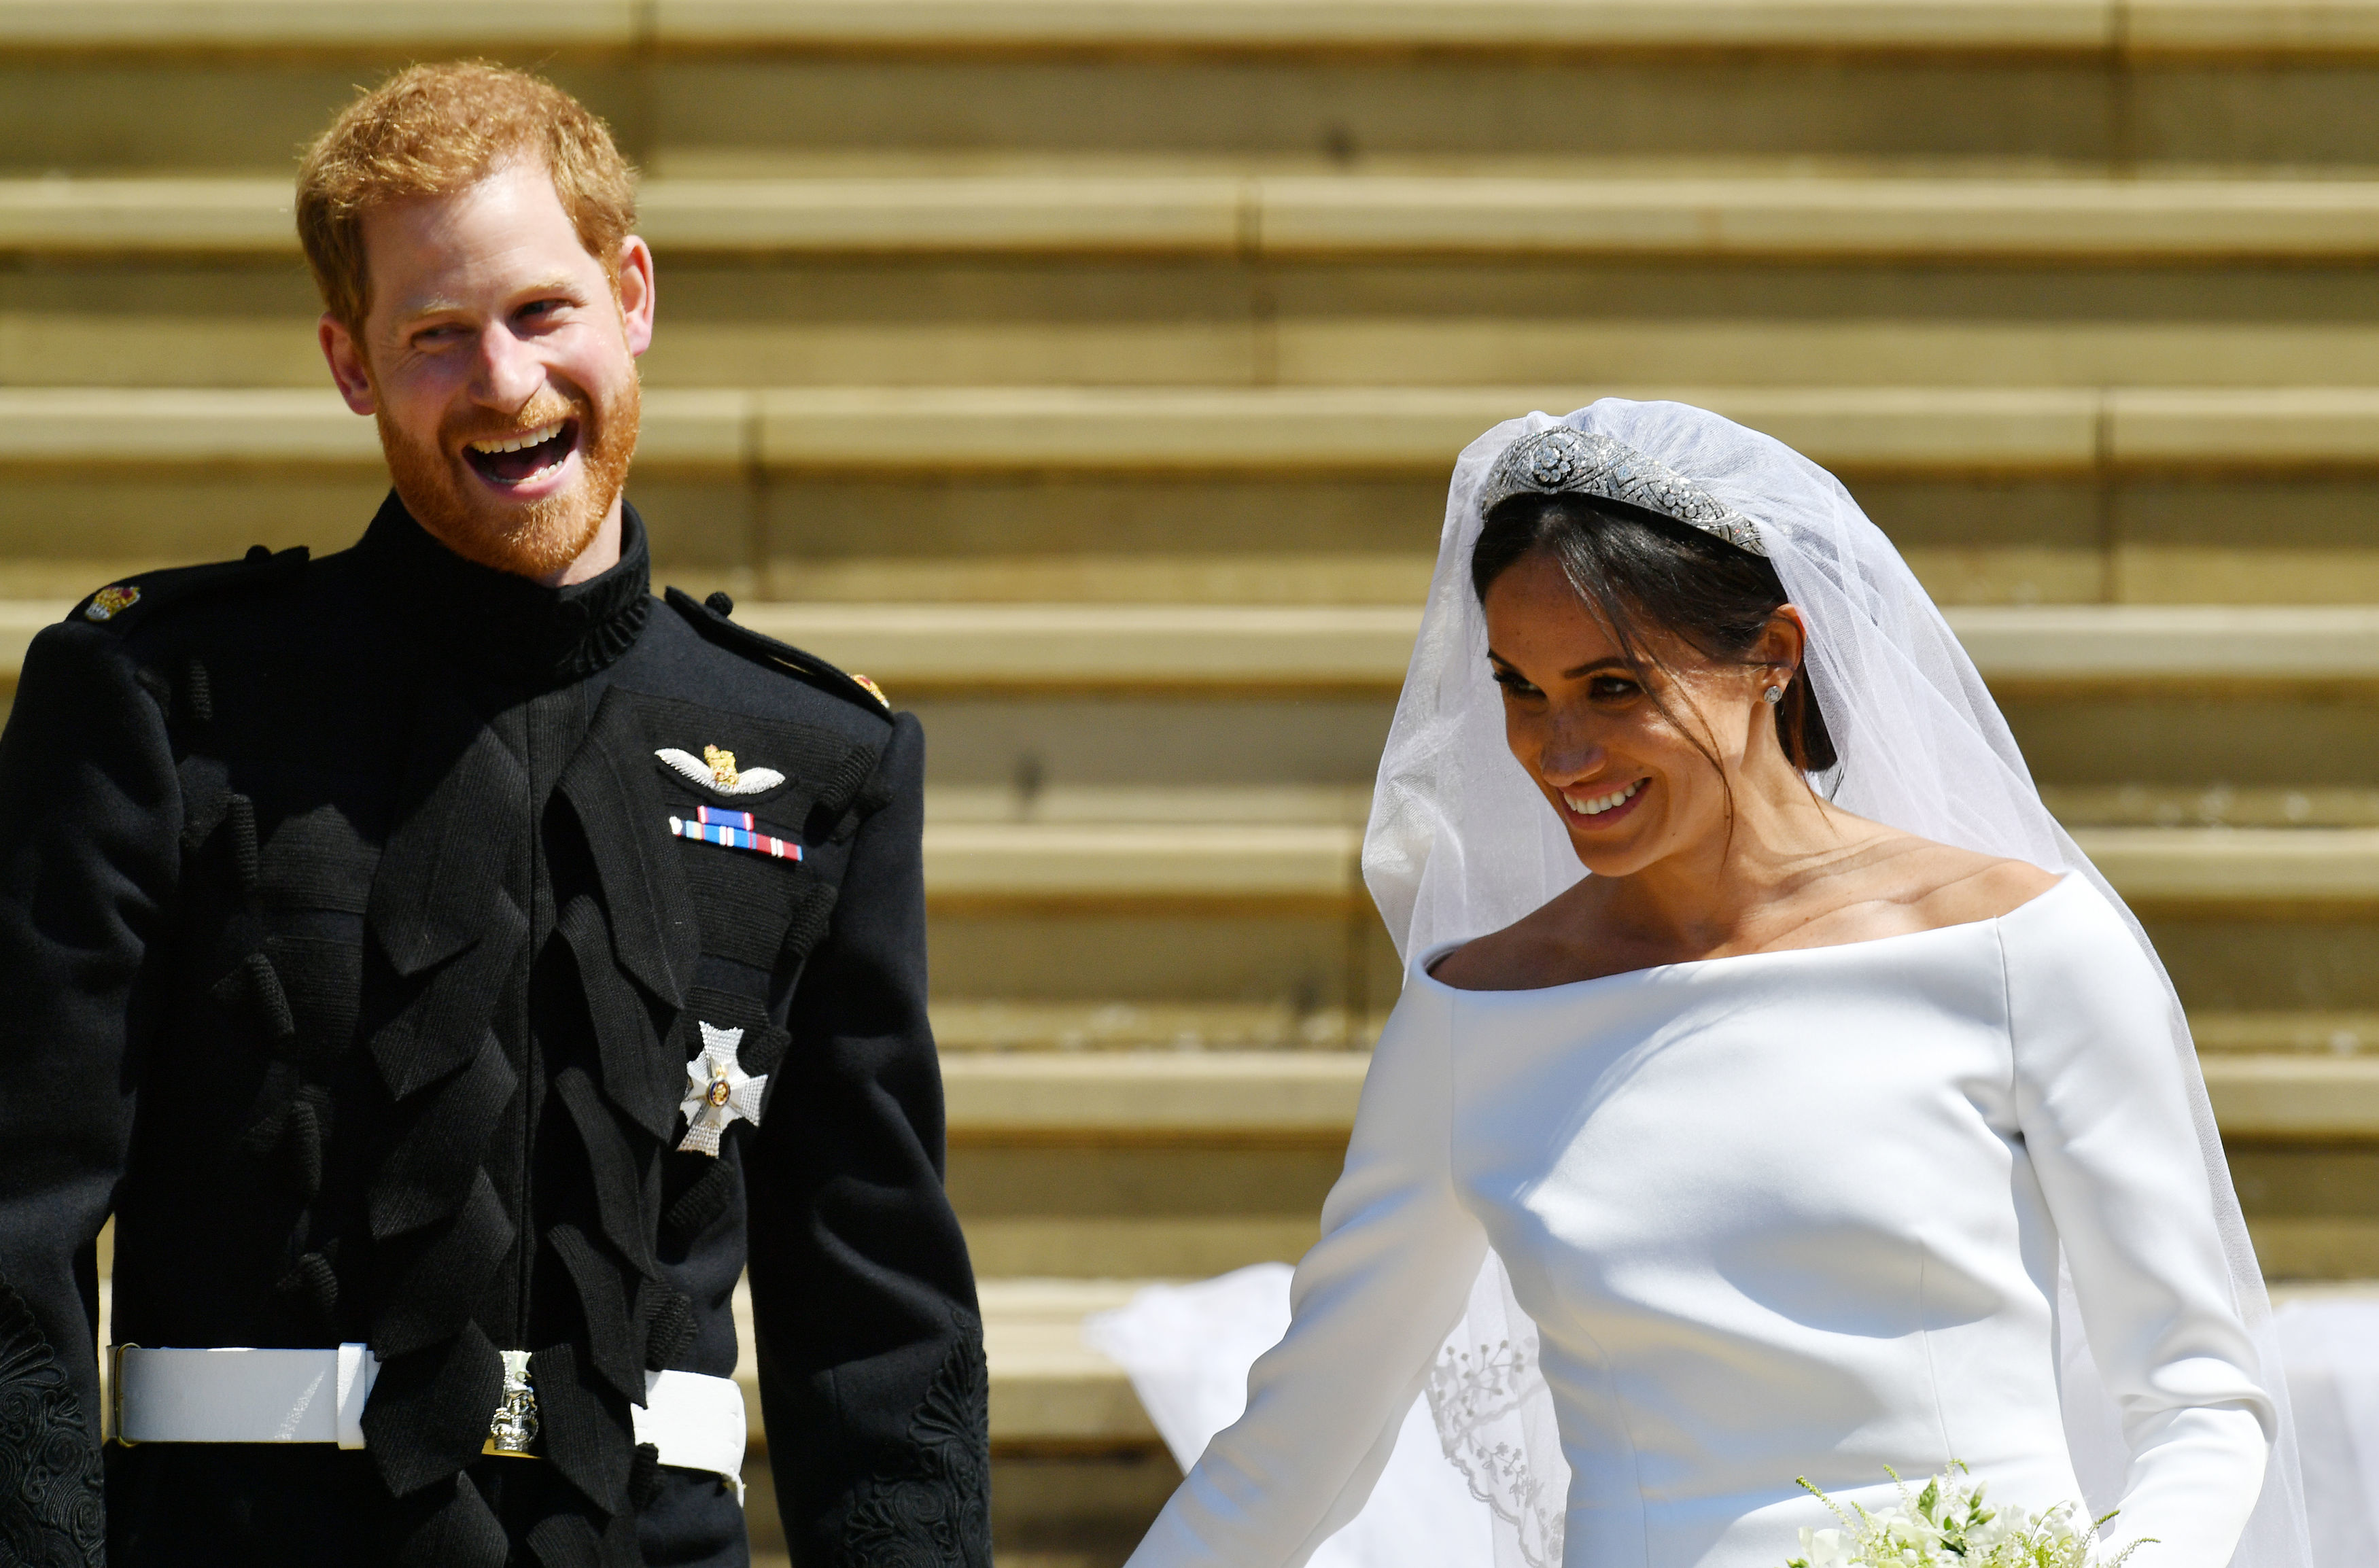 f18ea699e855 At Prince Harry and Meghan Markle's royal wedding, some things very old and  some things new - The Washington Post